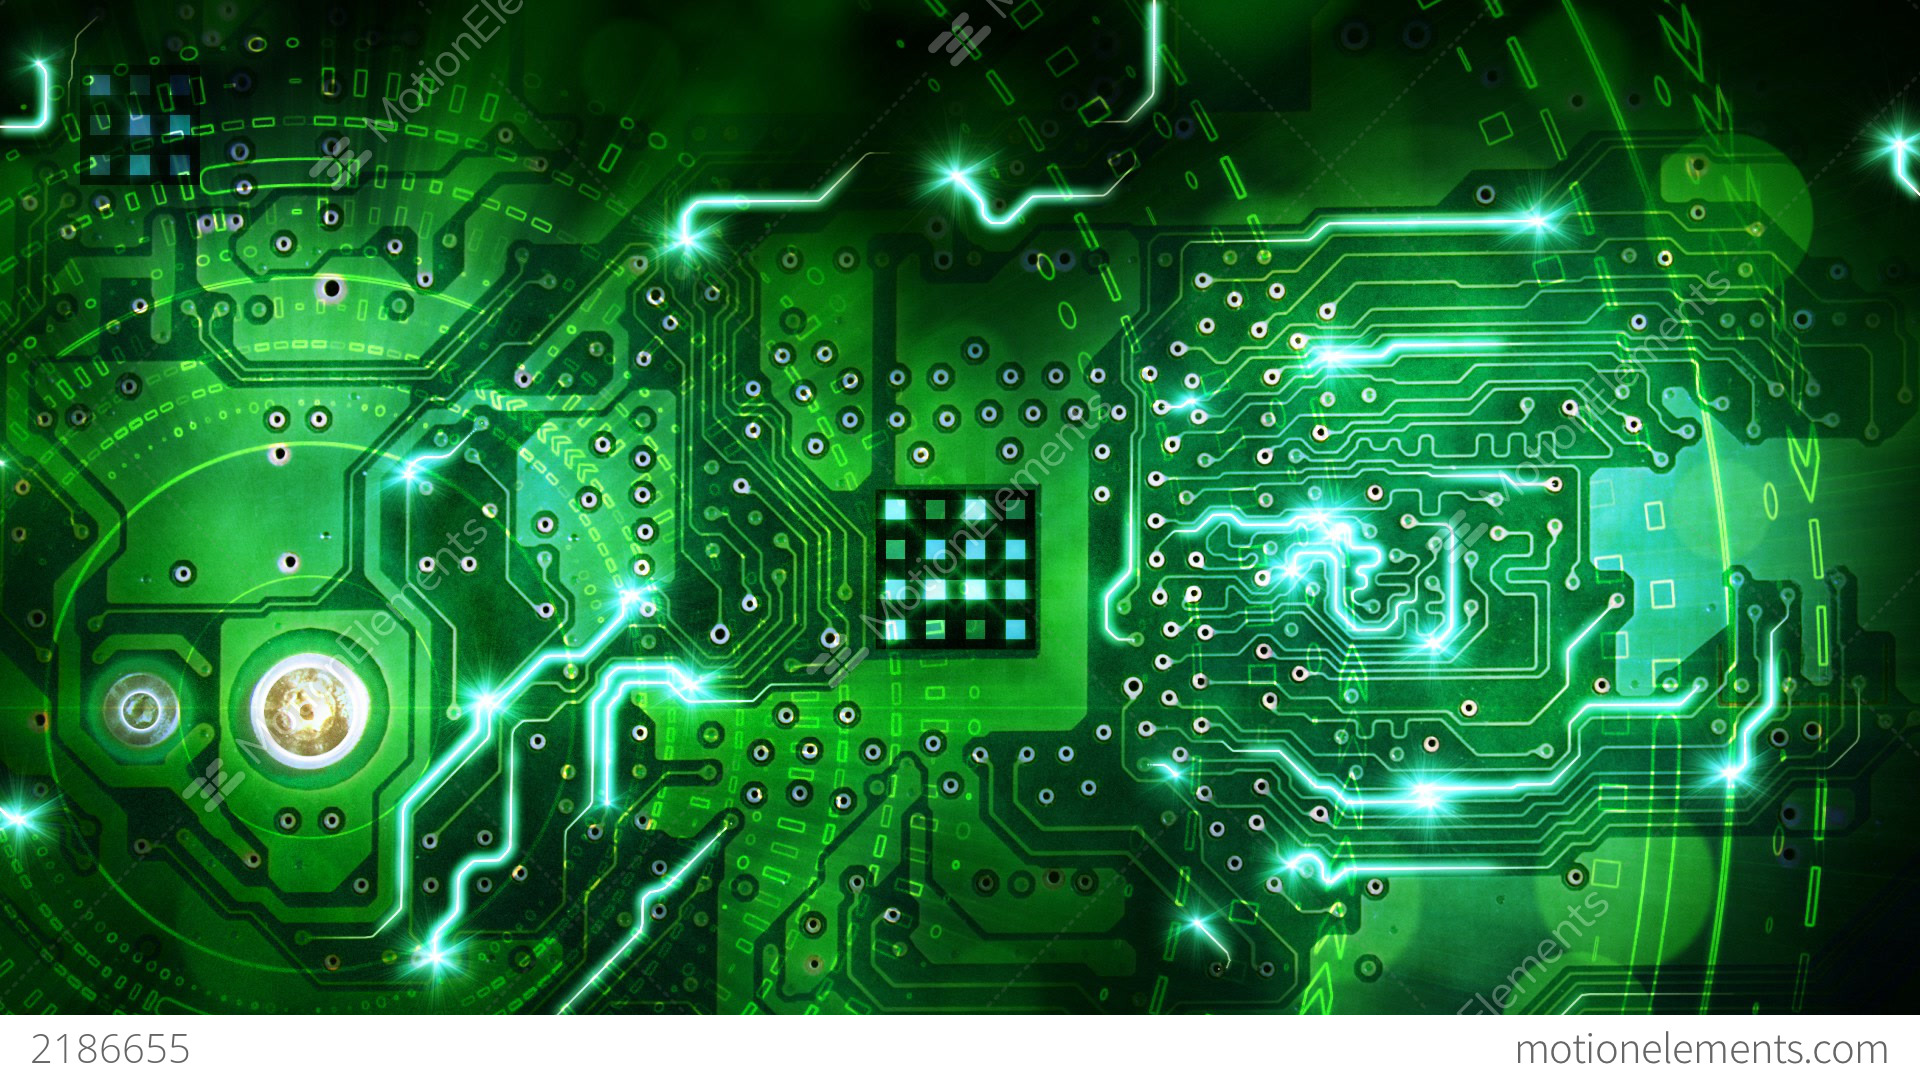 Circuit Pictures Auto Electrical Wiring Diagram Fileintegrated Circuits 4jpg Wikimedia Commons Green Computer Board Background Loop Stock